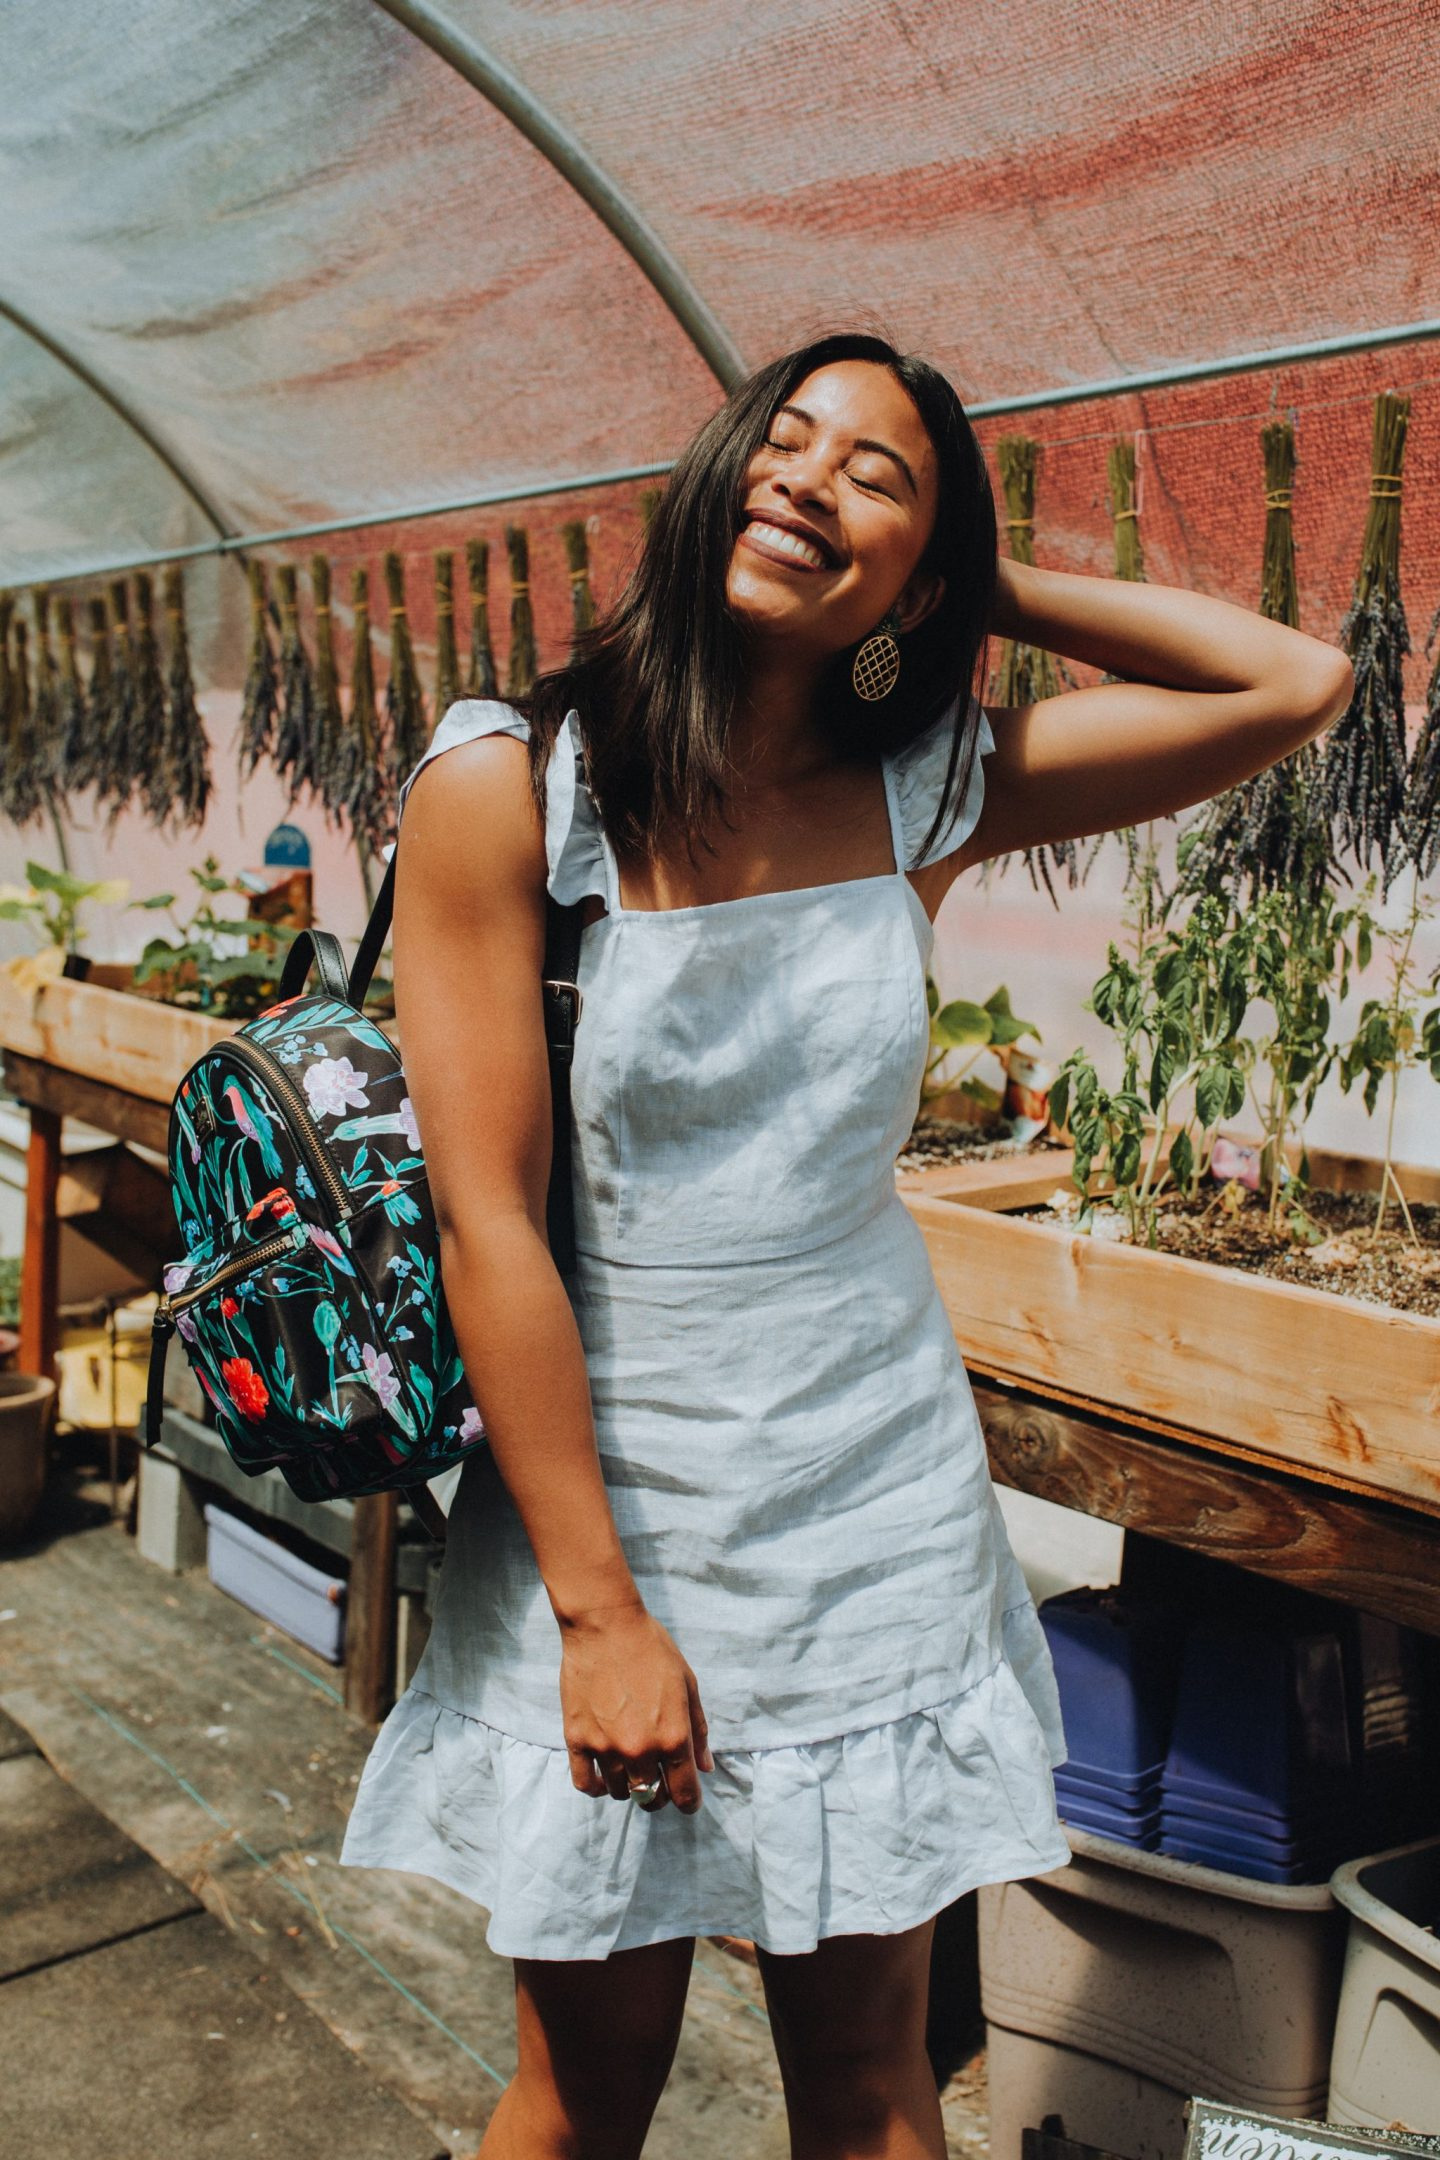 The Ruffle Dress Roundup: 25 Ruffle Dresses for Your Summer Wardrobe